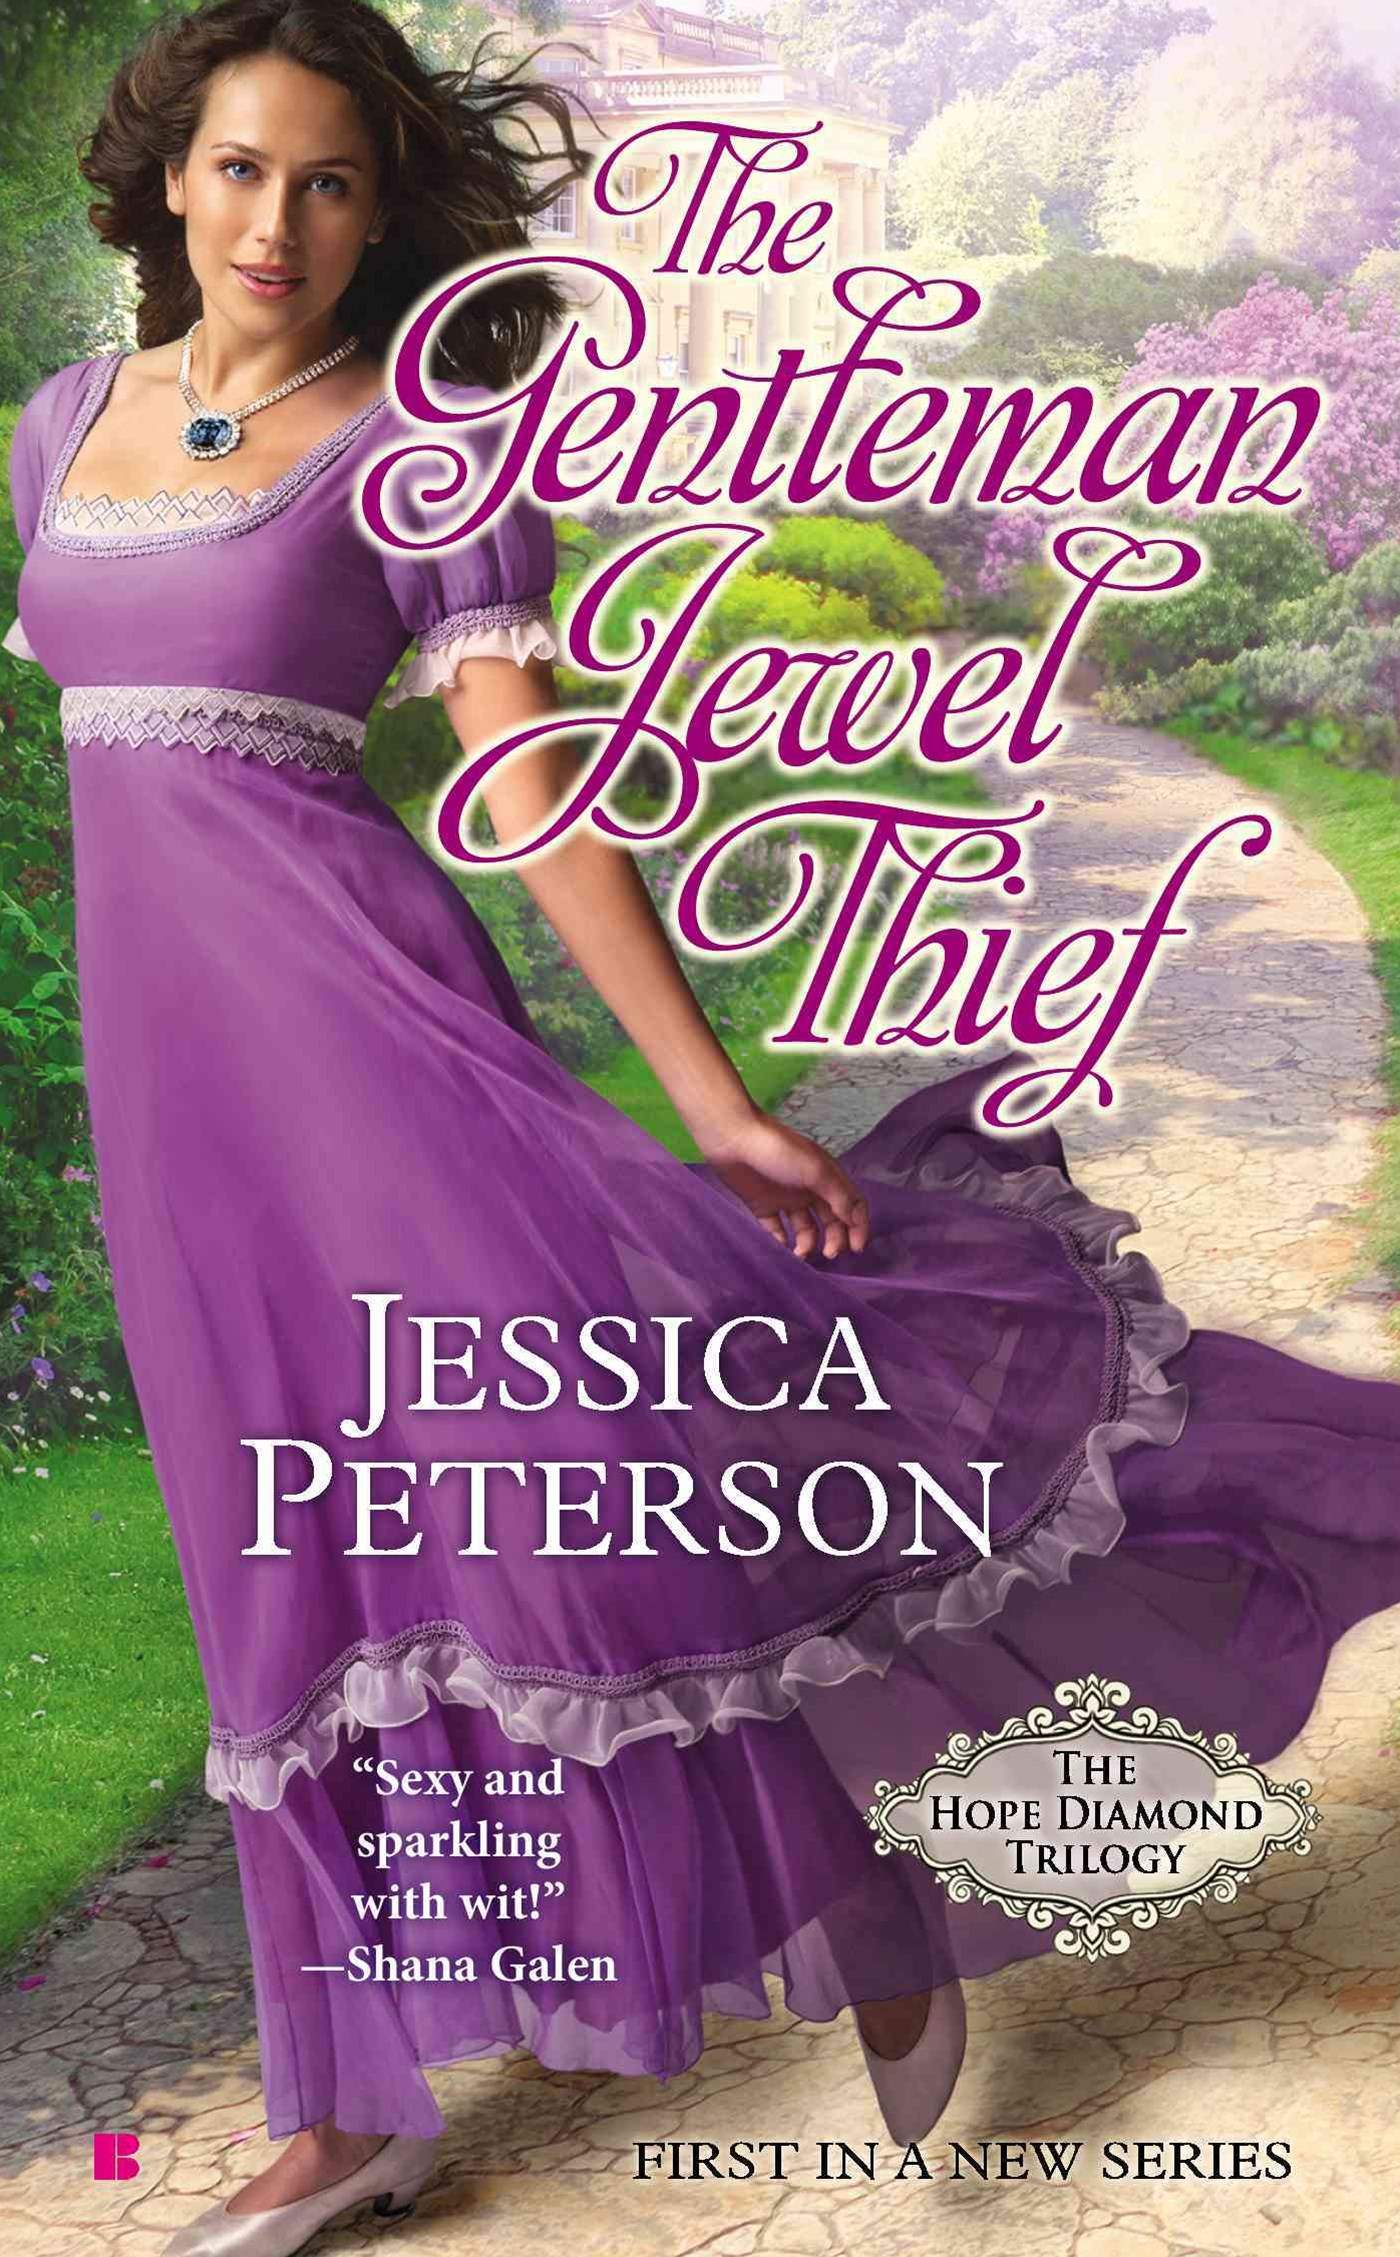 The Gentleman Jewel Thief: The Hope Diamond Trilogy Book 1